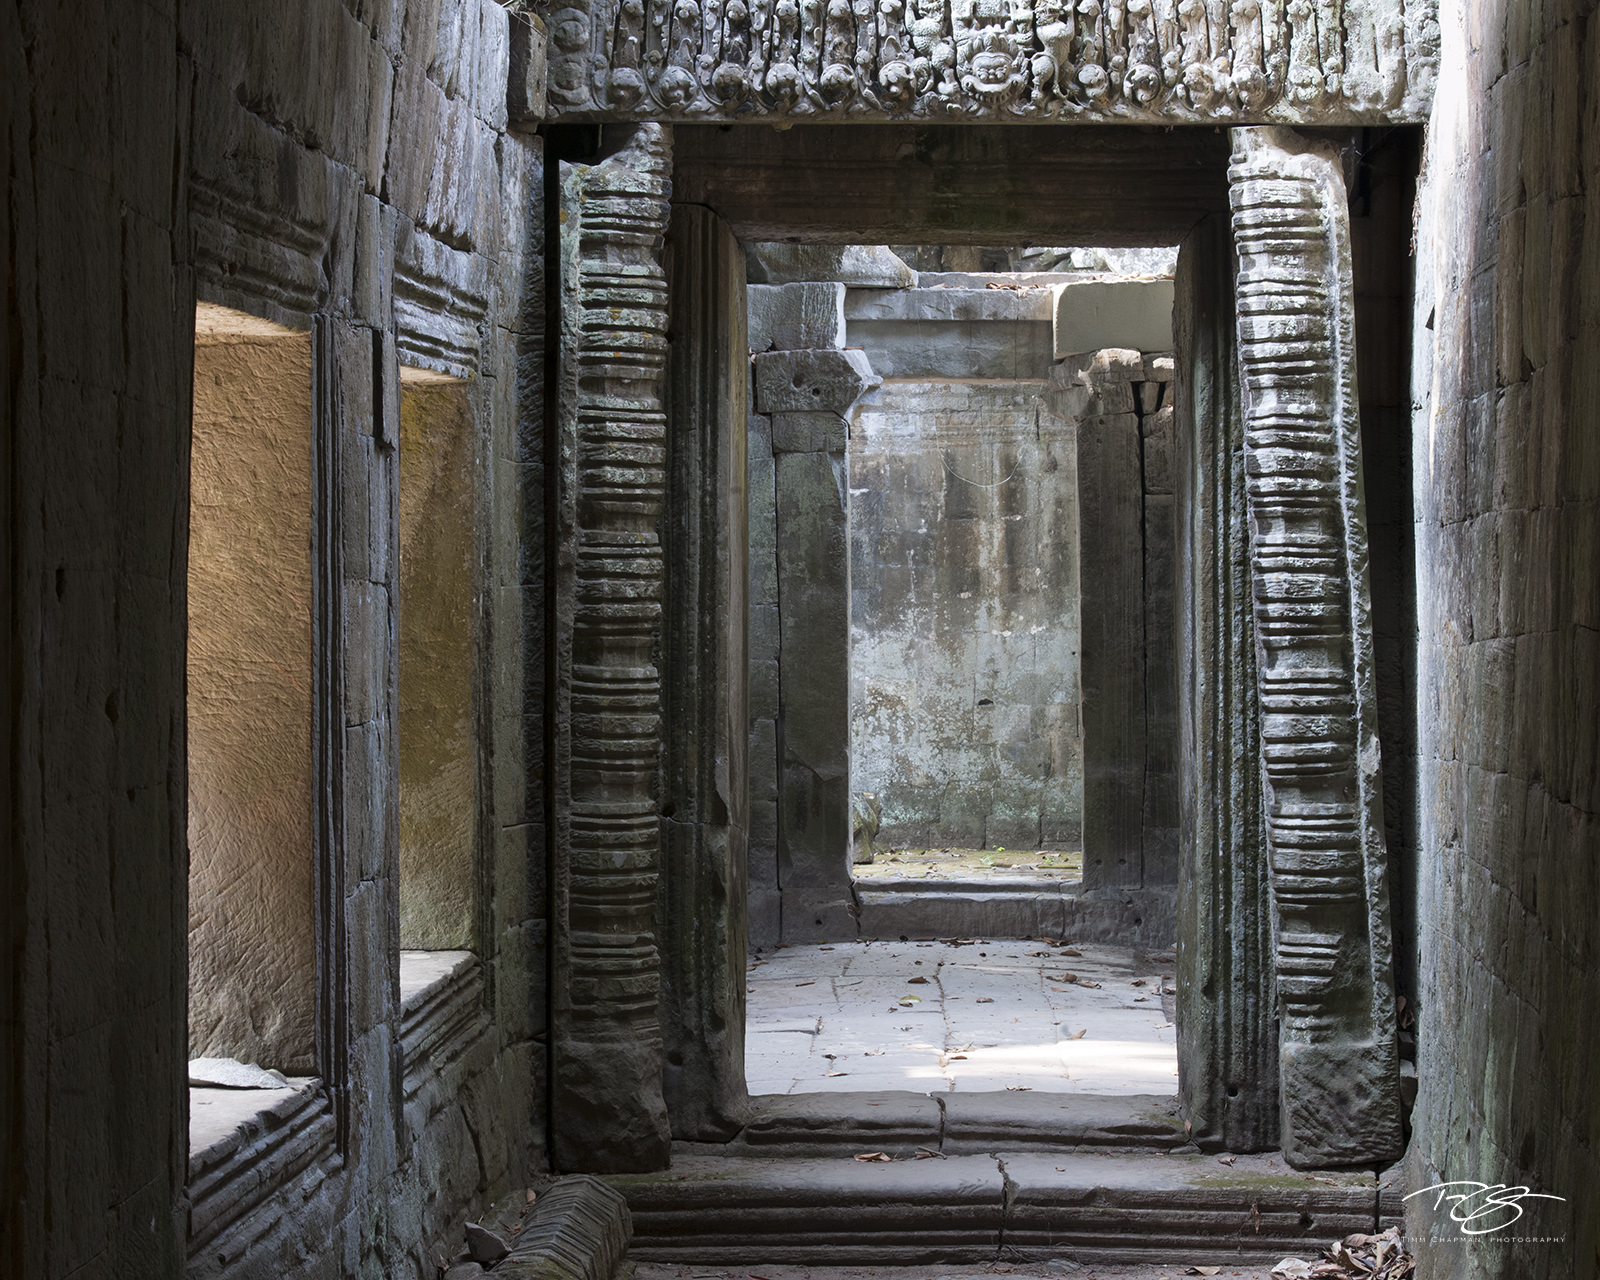 angkor wat, cambodia, temple, preah khan, ancient, whispers, carving, stone, gallery, chamber, hallway, corridor, window, door, doorway, doorways, chambers, light, shadow, sculpture, ancient, library, photo